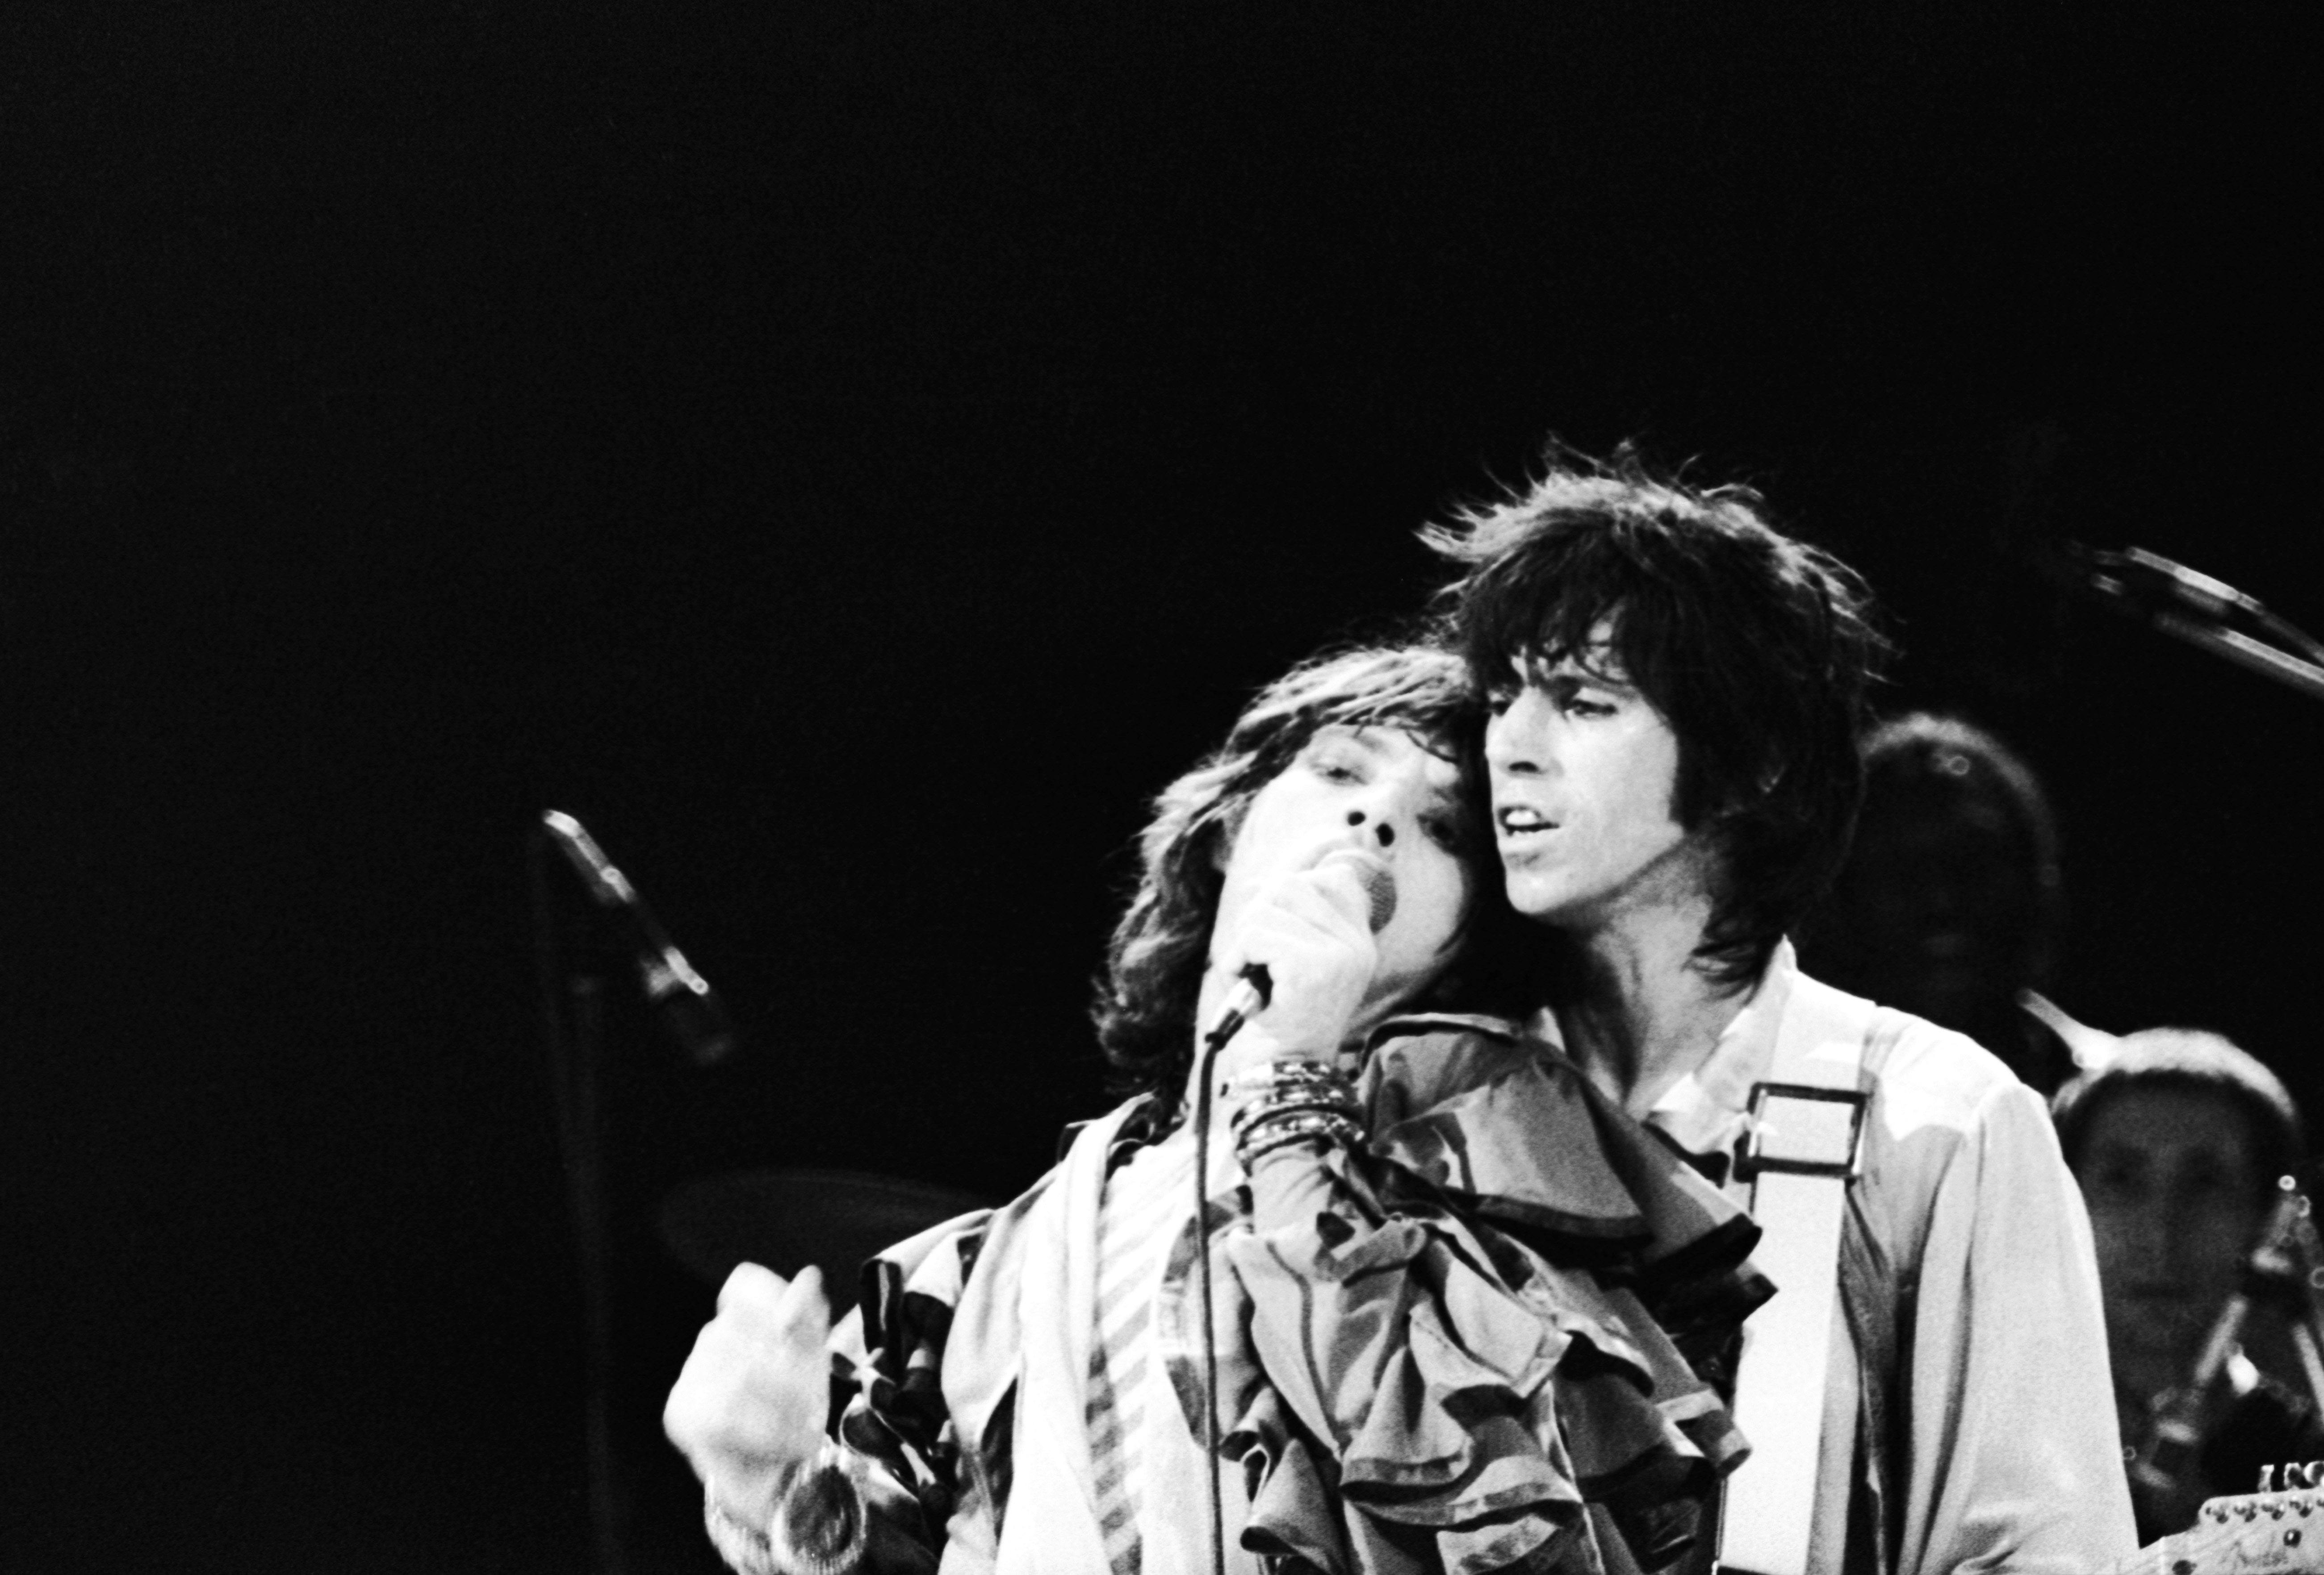 Mick Jagger and Keith Richards of the Rolling Stones performing at Earl's Court, London, 25th May 1976.  (Photo by John Minihan/Evening Standard/Hulton Archive/Getty Images)